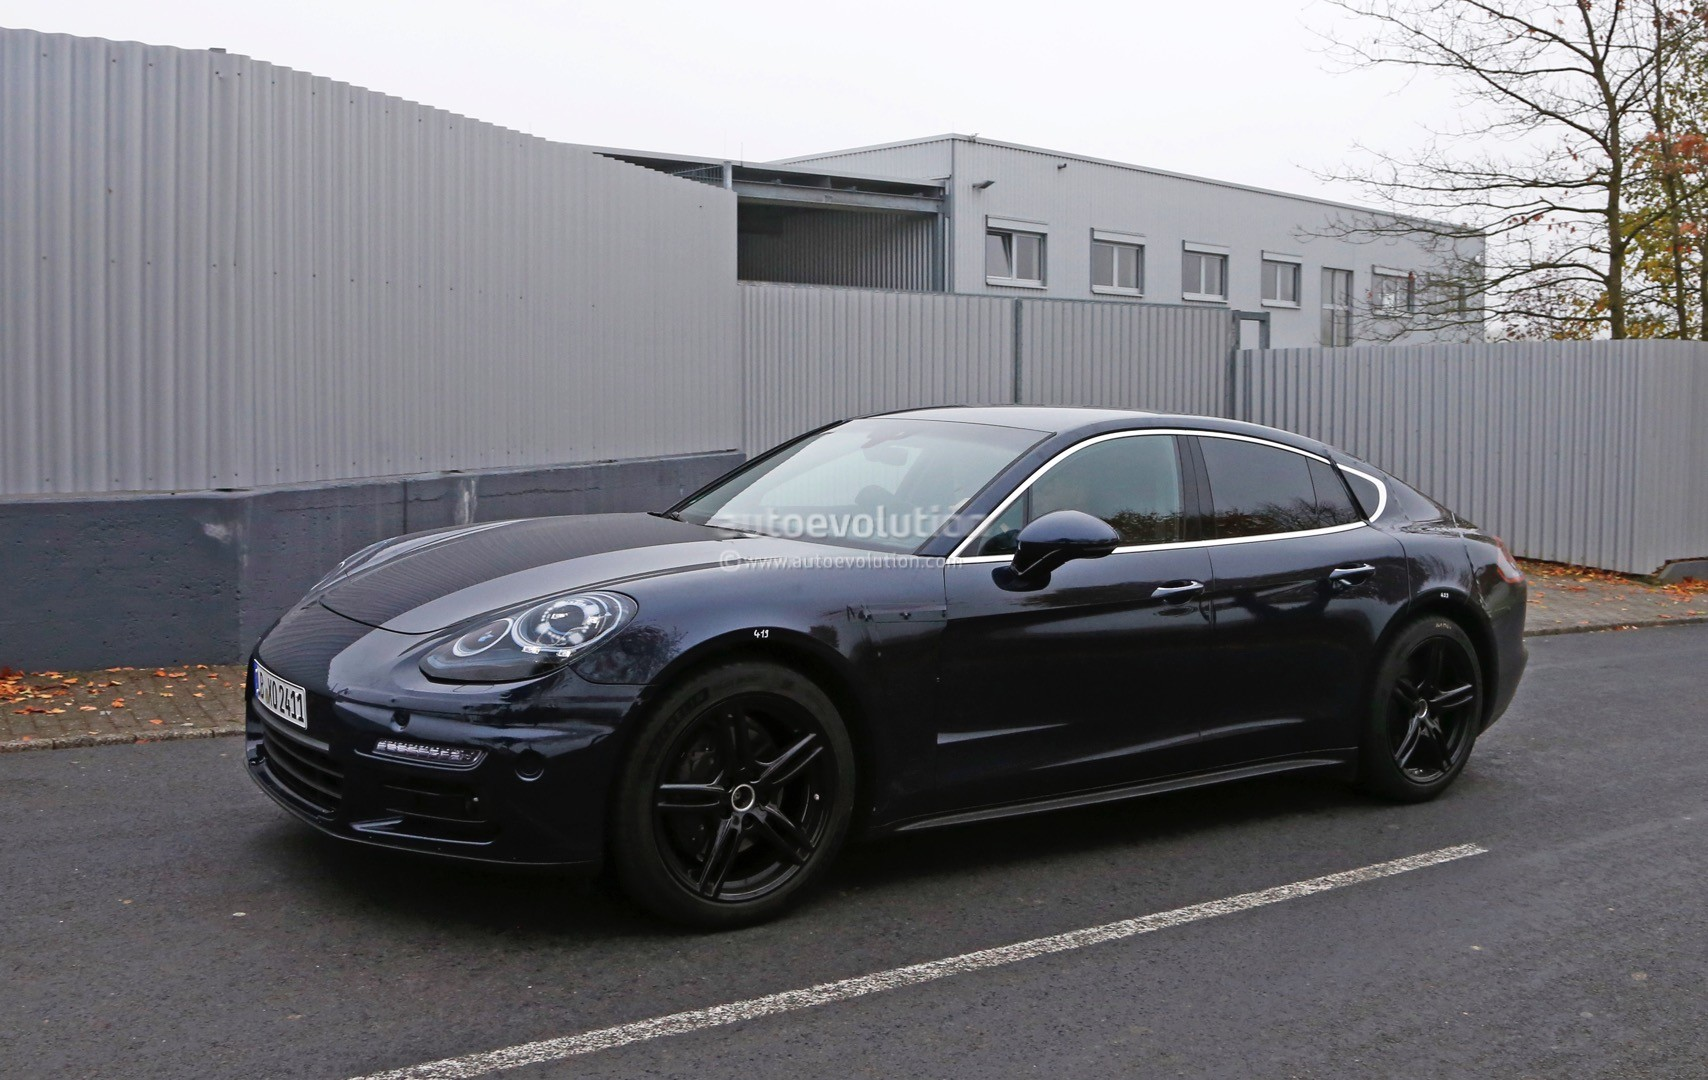 2017 porsche panamera spied close to nurburgring testing turbo engine autoevolution. Black Bedroom Furniture Sets. Home Design Ideas